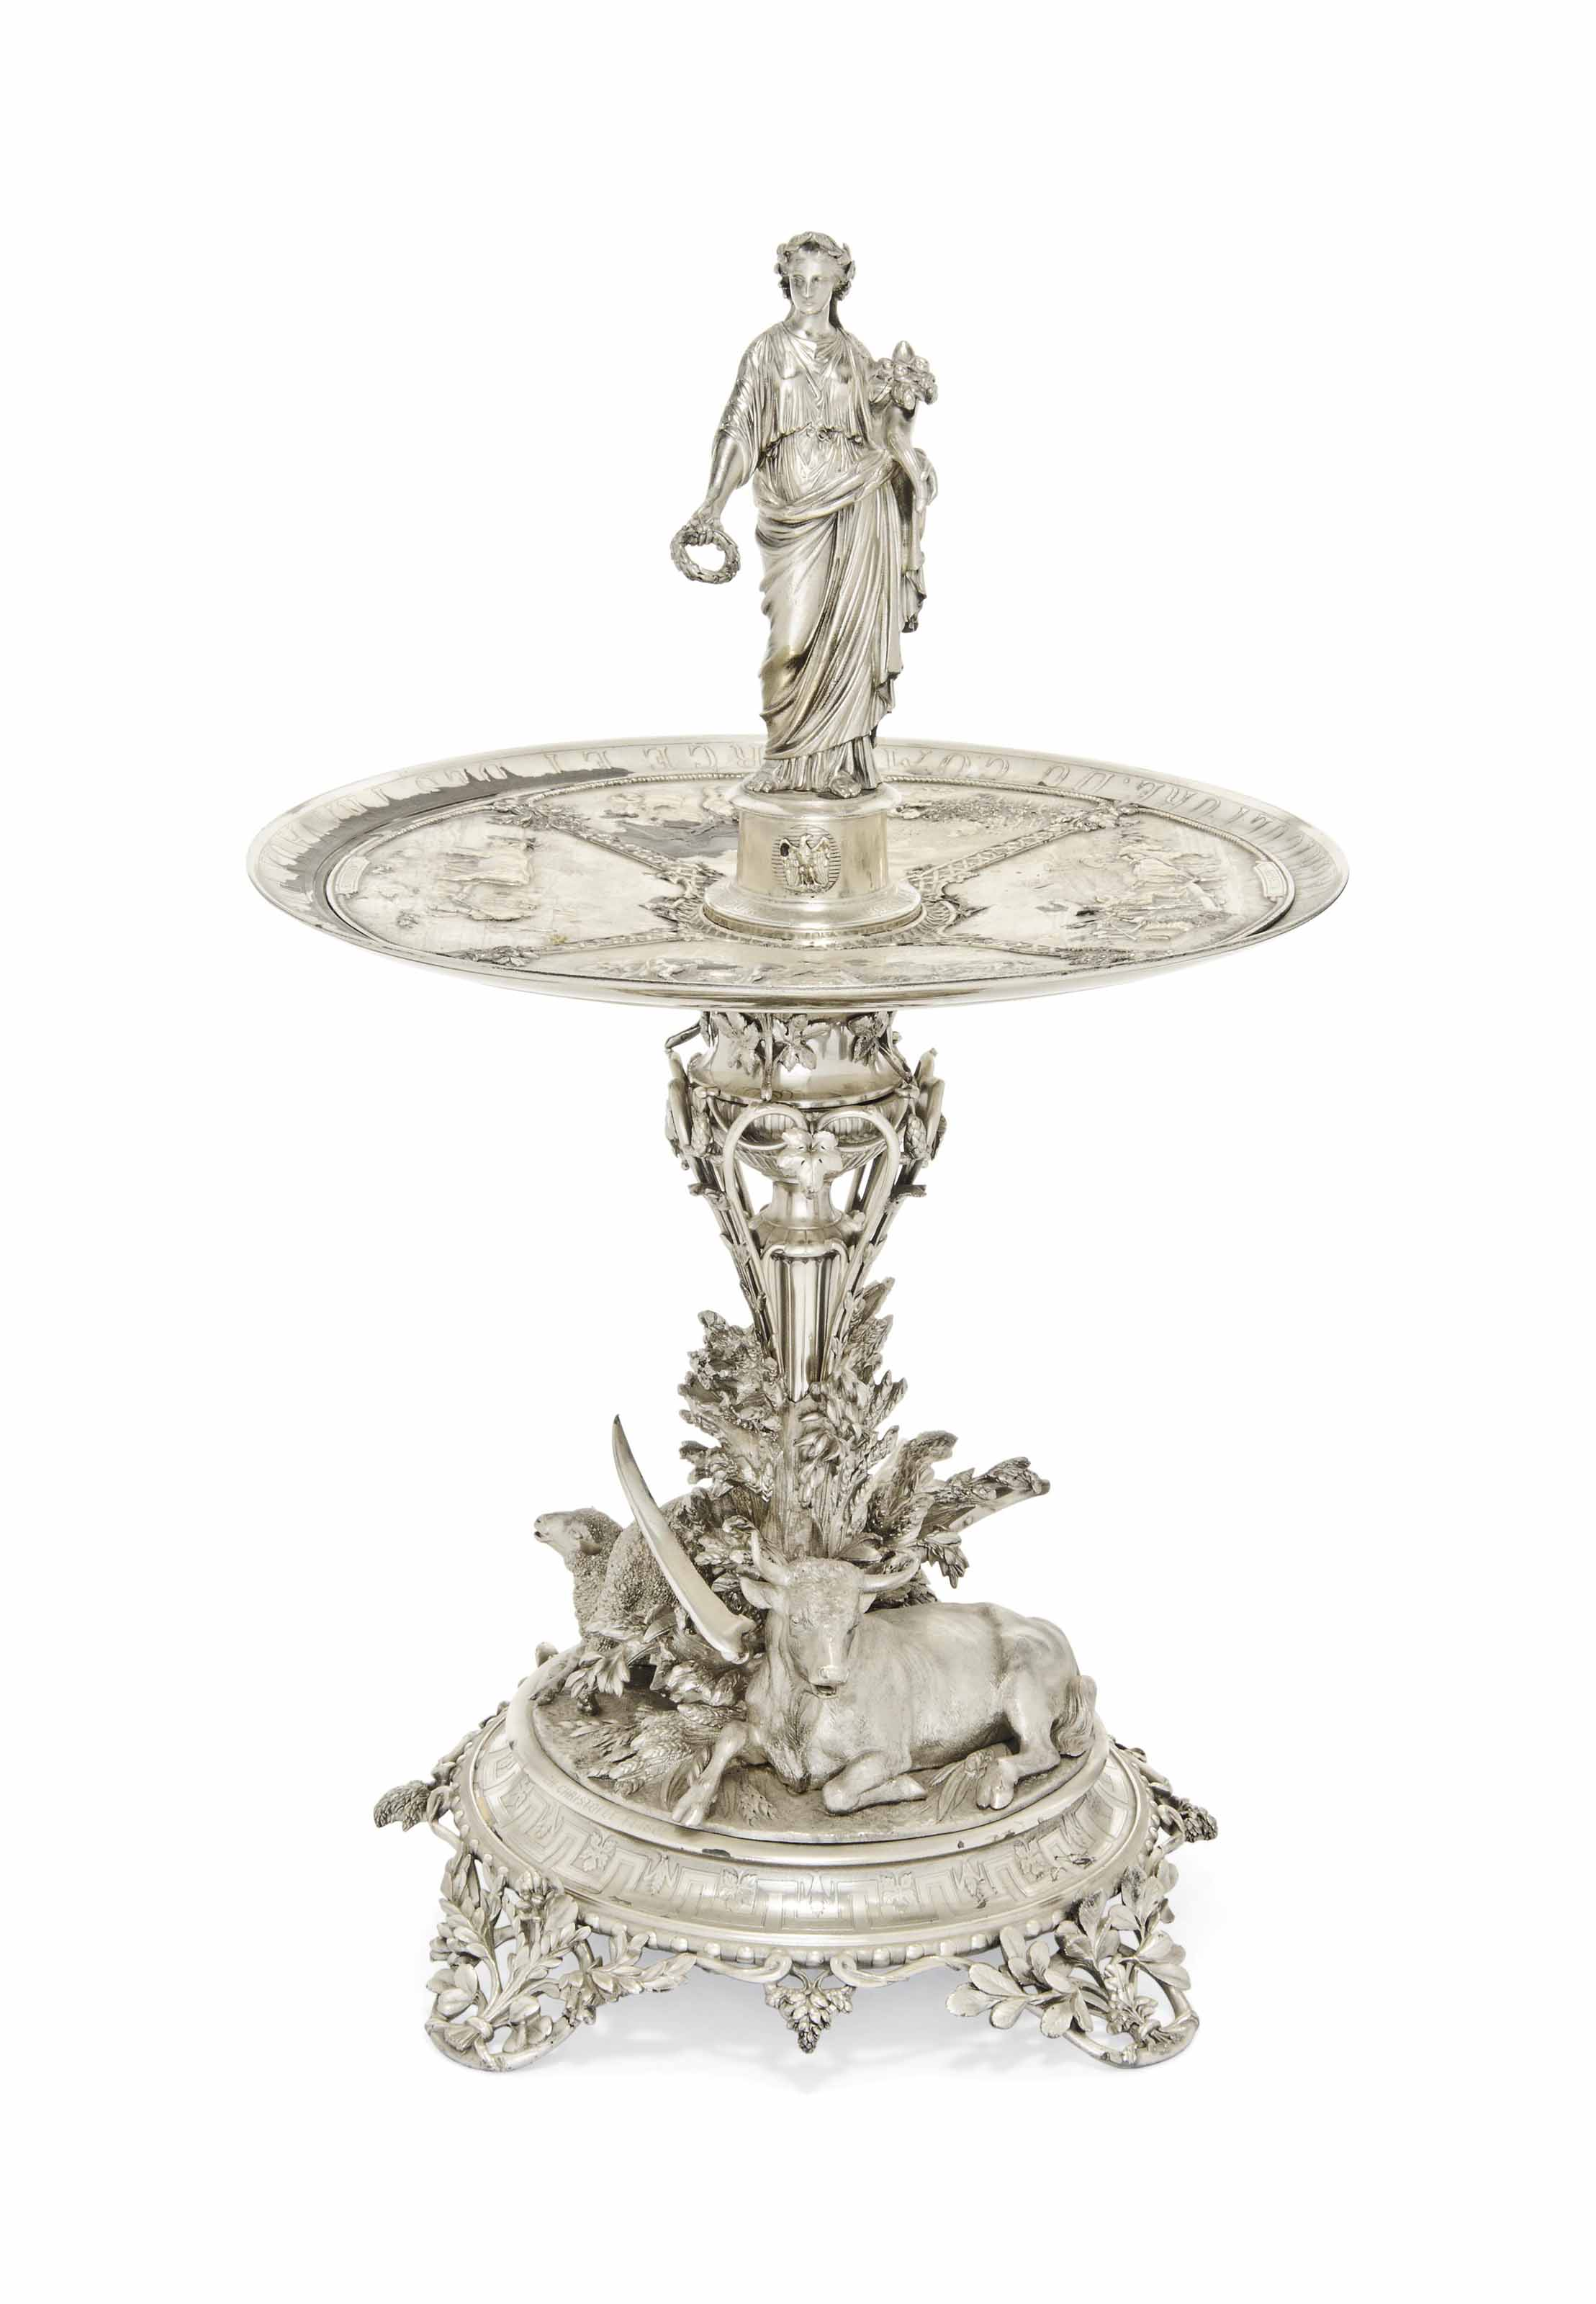 A FRENCH PARCEL-GILT SILVER AGRICULTURAL PRIZE CENTREPIECE